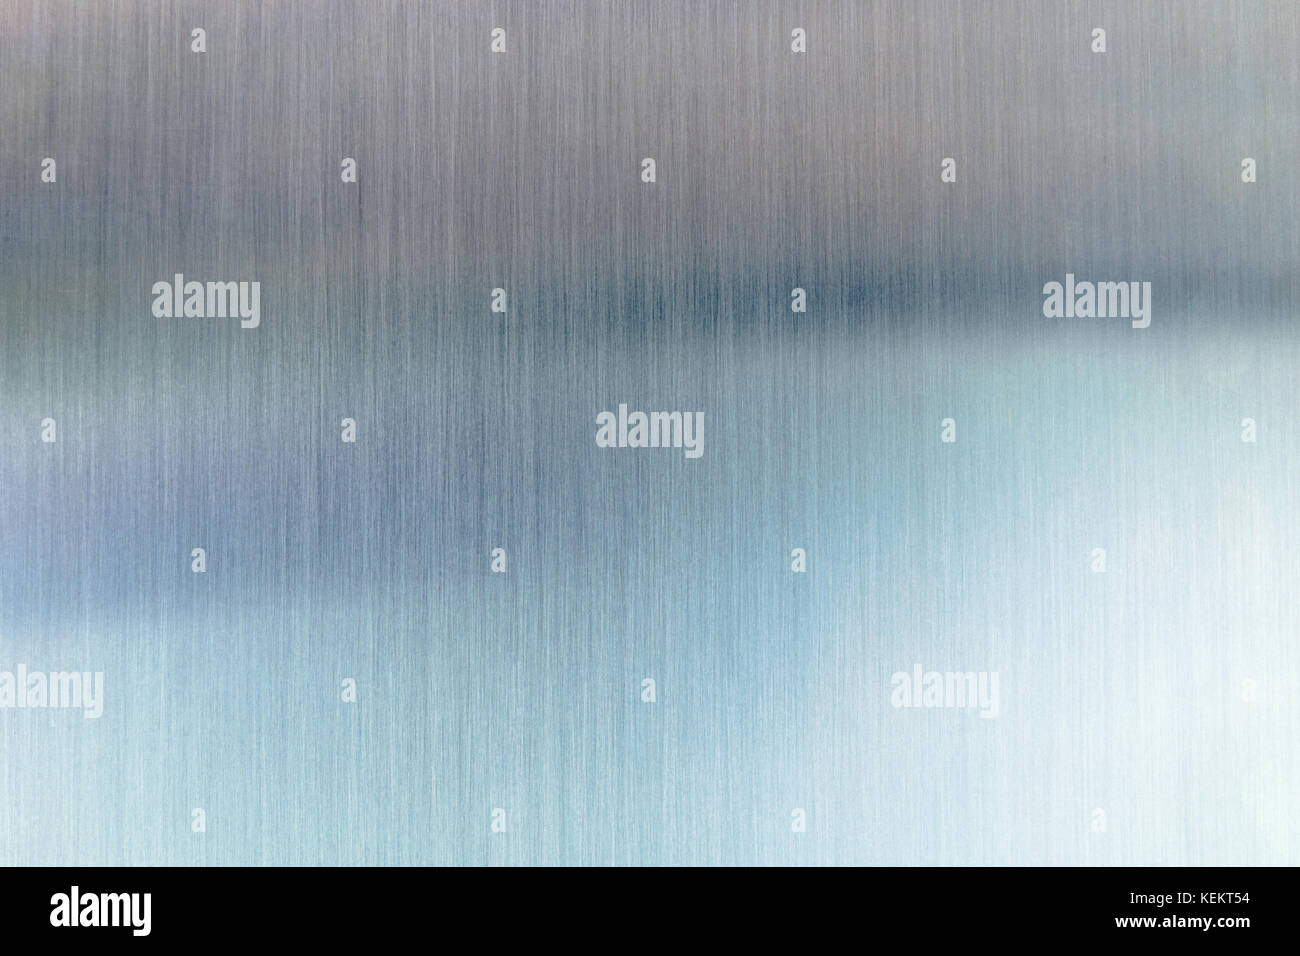 Convex polished shiny steel metal surface with colored reflections and glare. - Stock Image